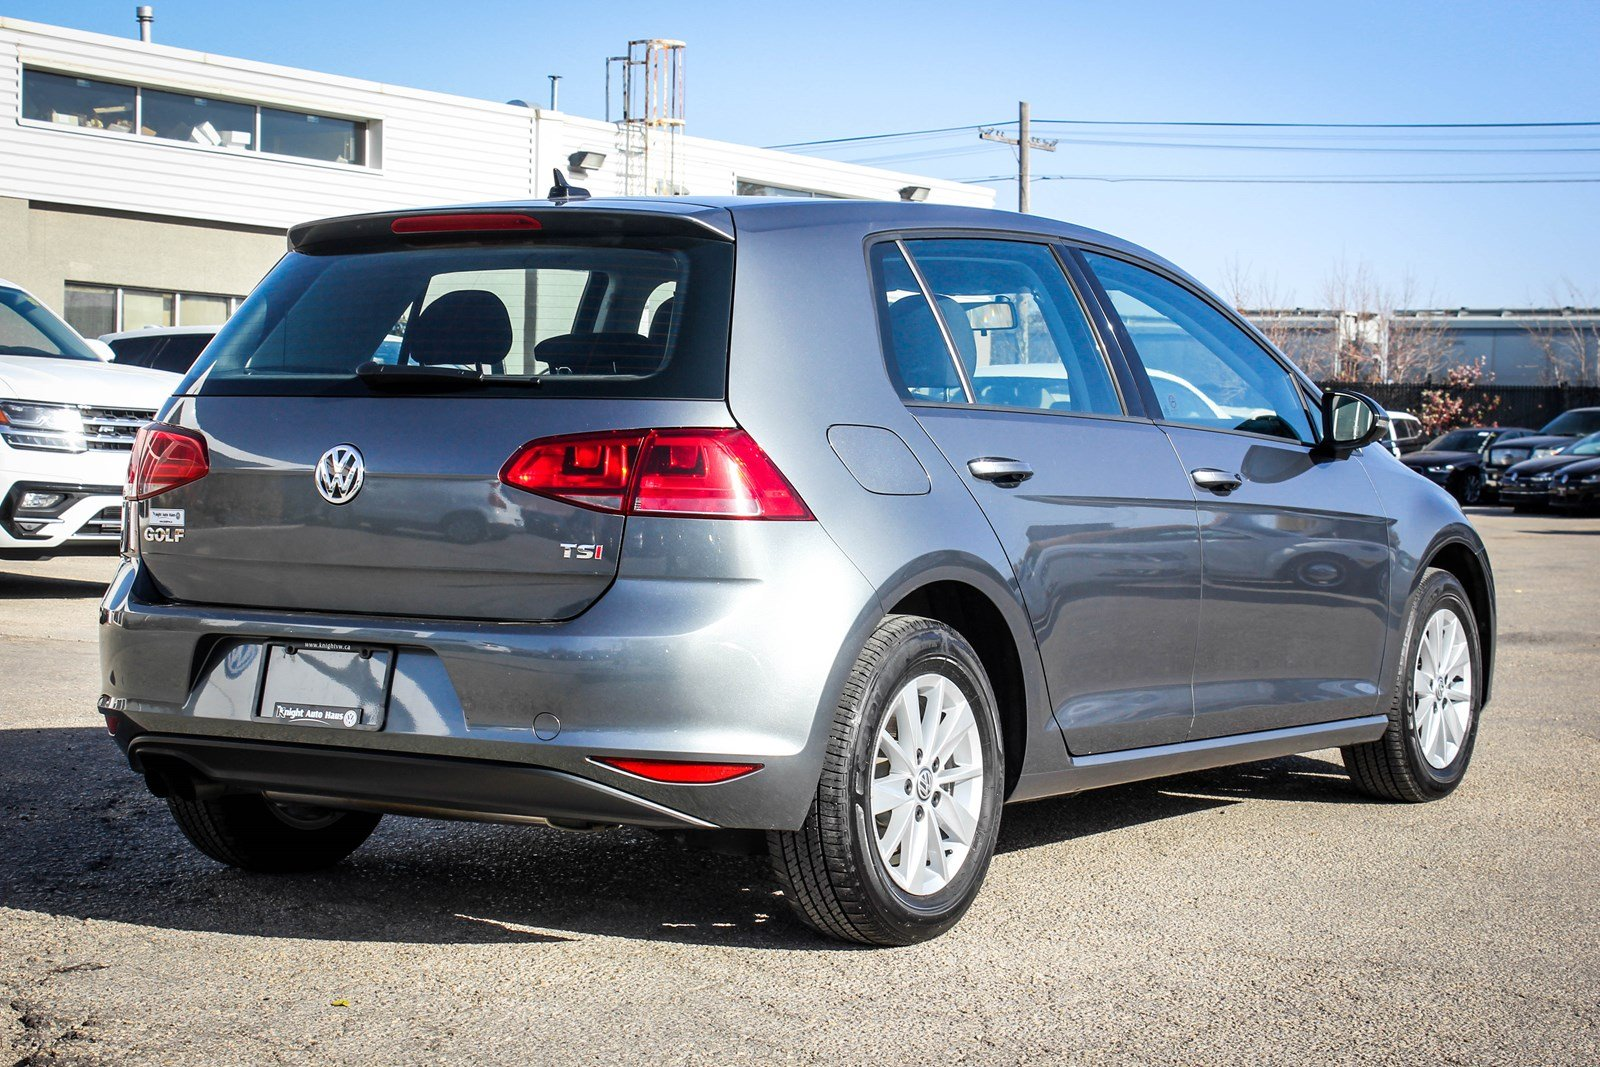 2016 volkswagen golf w app connect backup cam financing avail oac fwd hatchback auto. Black Bedroom Furniture Sets. Home Design Ideas